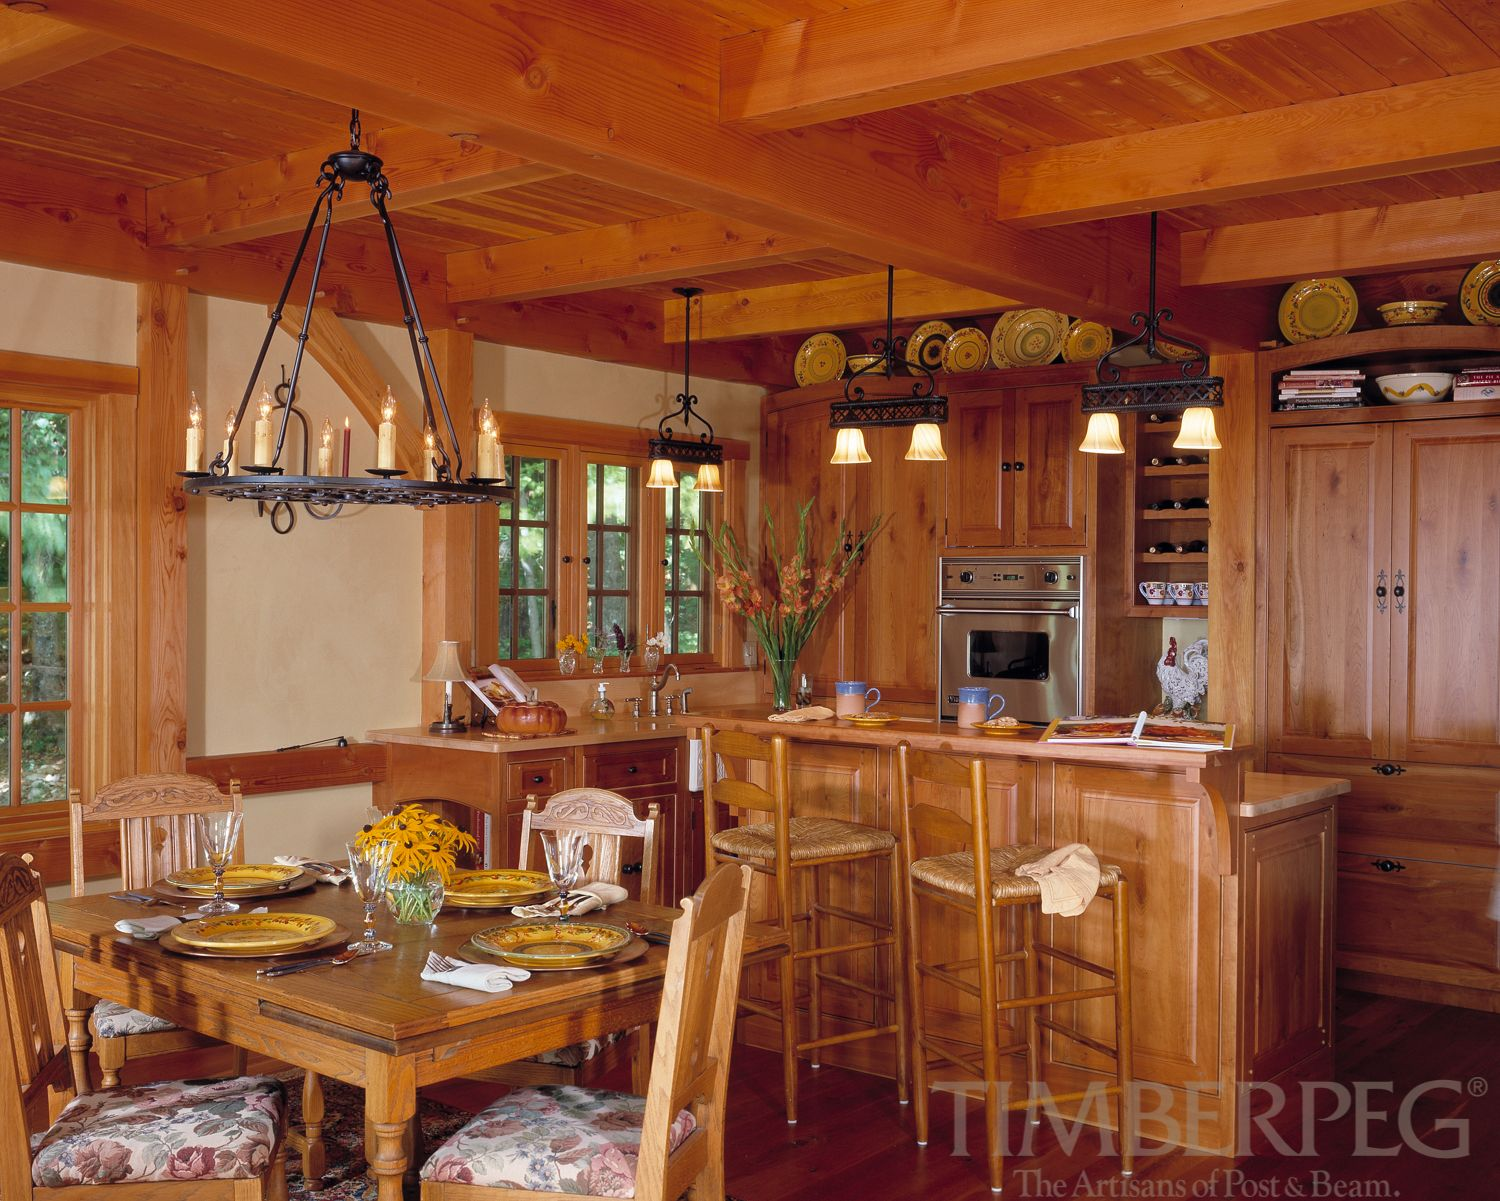 Post and beam carriage house plans - Explore Timber Frame Homes Carriage House And More Residential Timberpeg Post And Beam